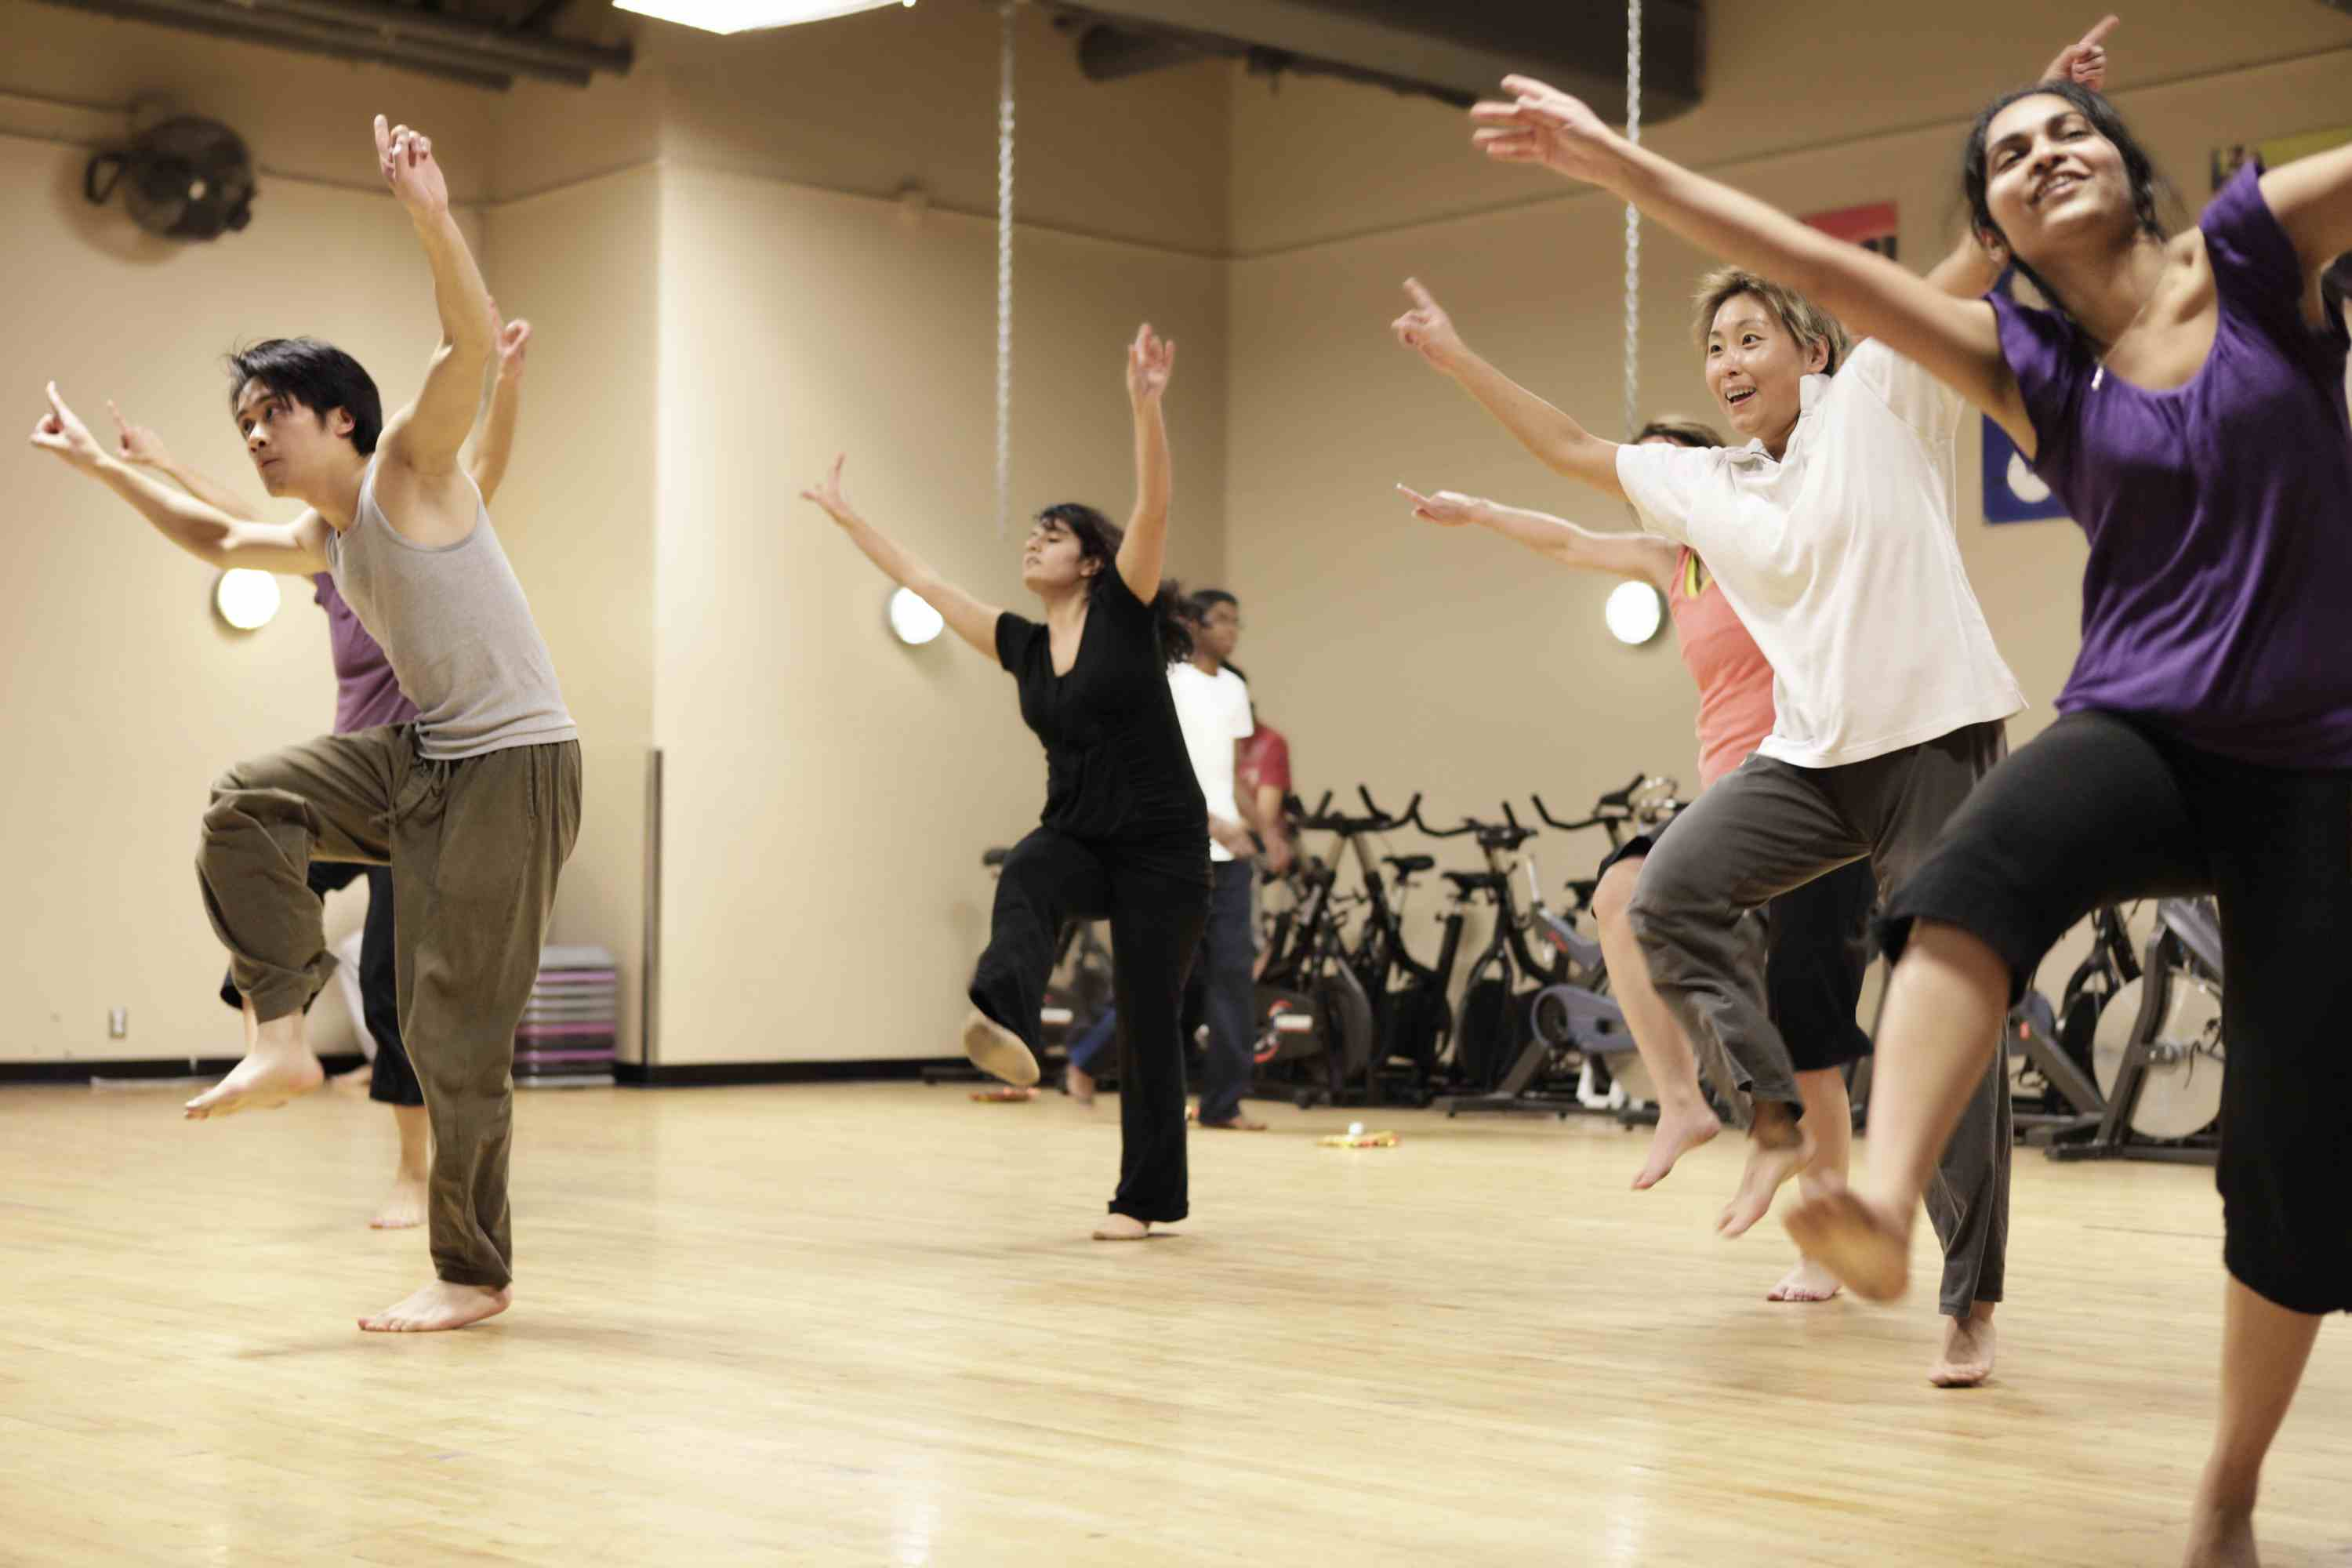 Dancers participating in a Bollywood dance lesson.